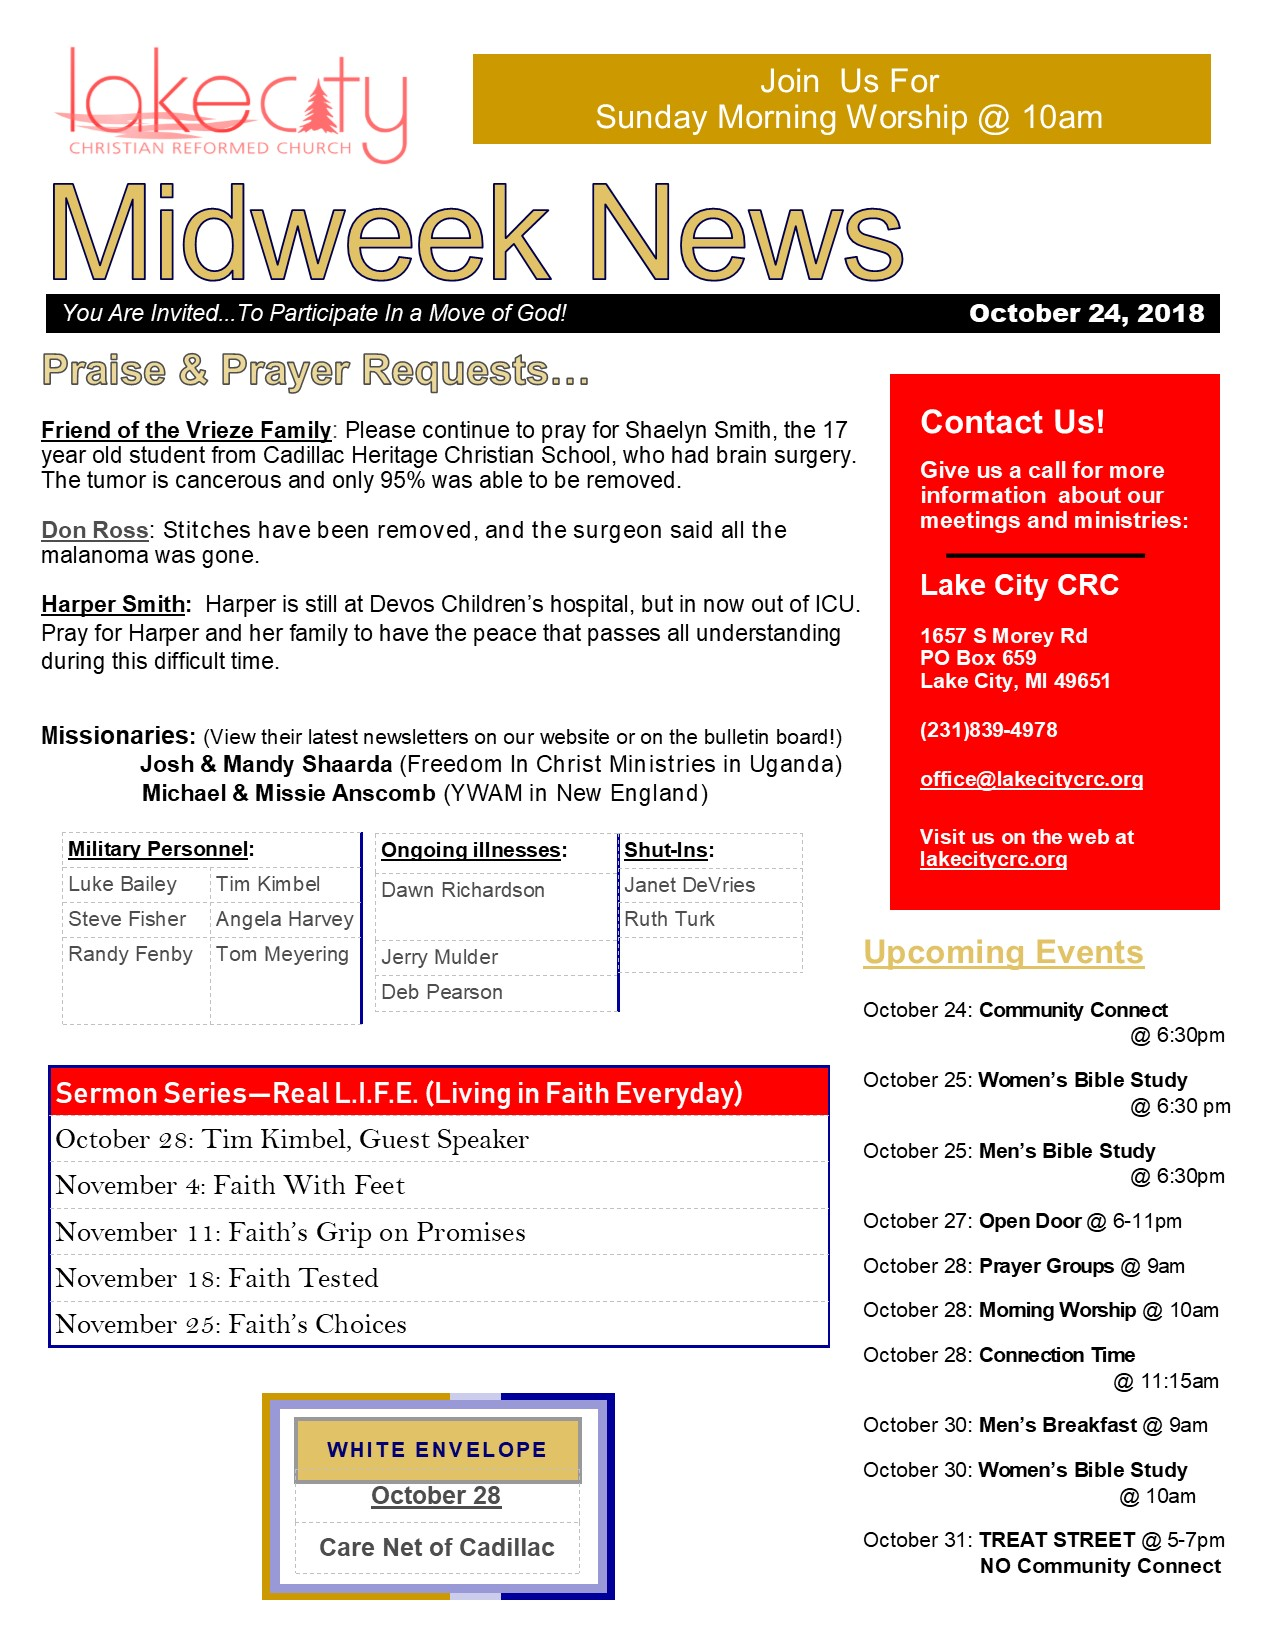 October 24, 2018 Mid-Weeks News